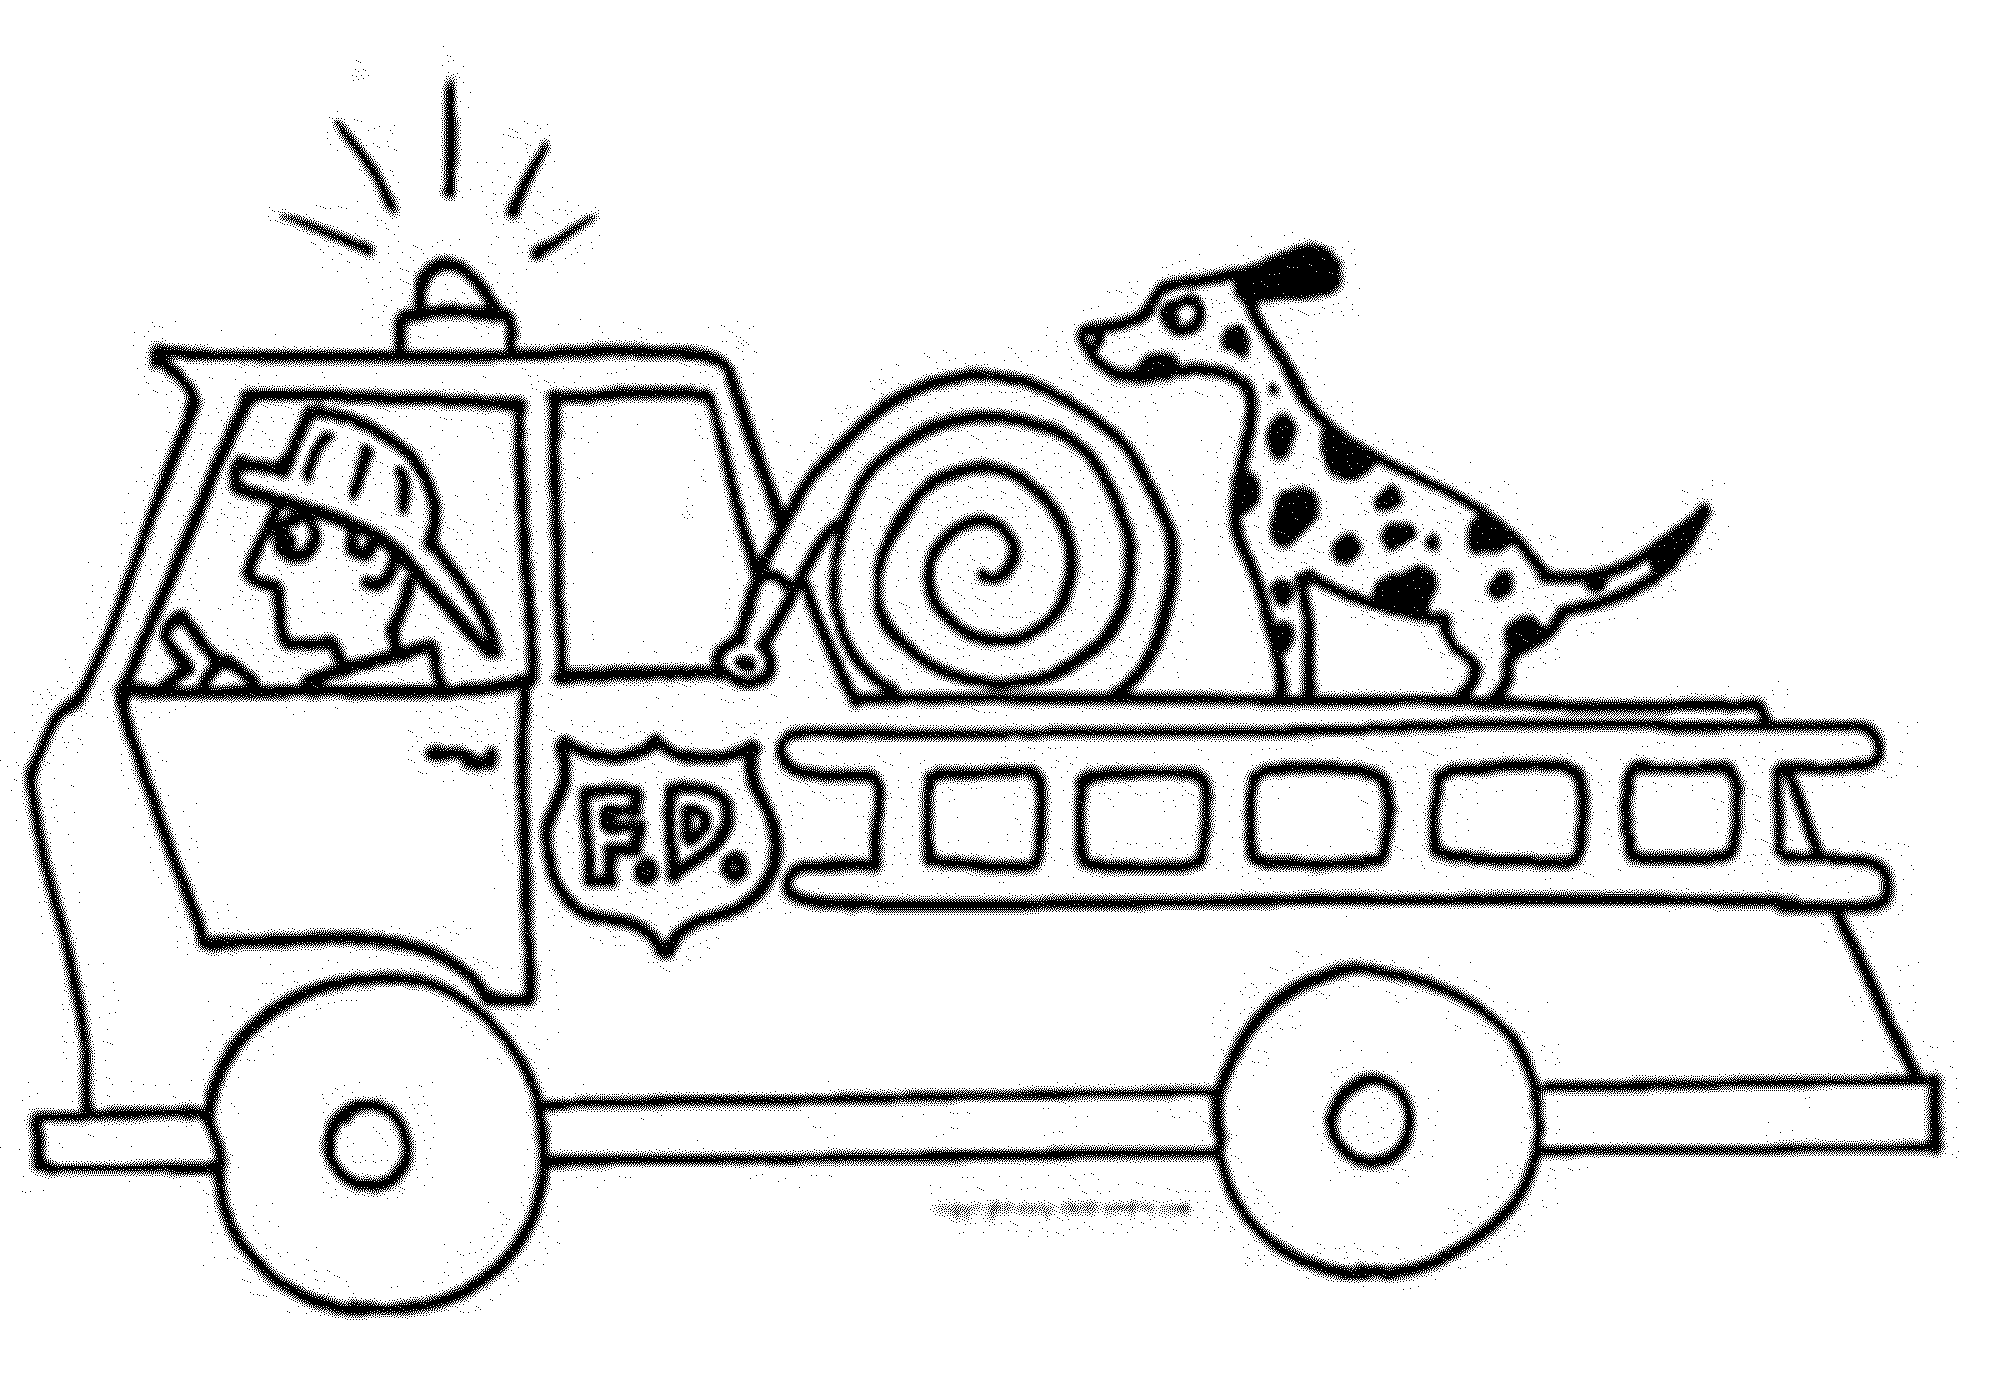 fire truck coloring sheets fire truck coloring pages coloring pages to download and coloring sheets fire truck